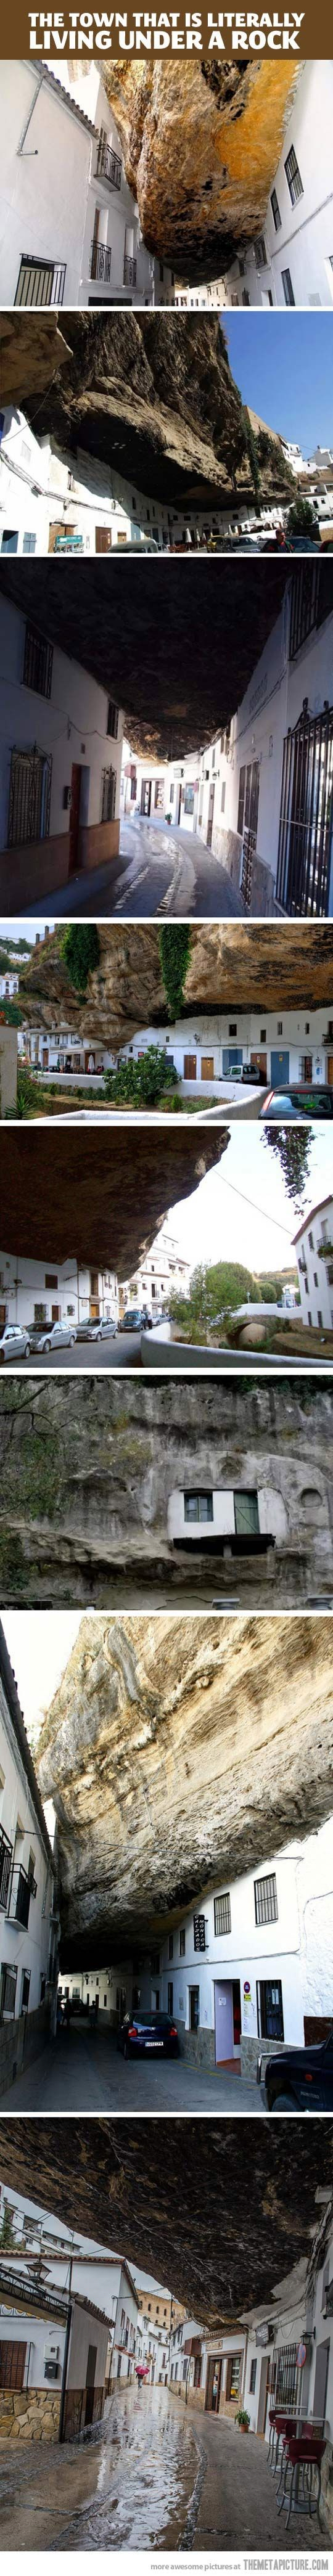 The town that is literally living under a rock…Setenil de las Bodegas, Cadiz, Spain